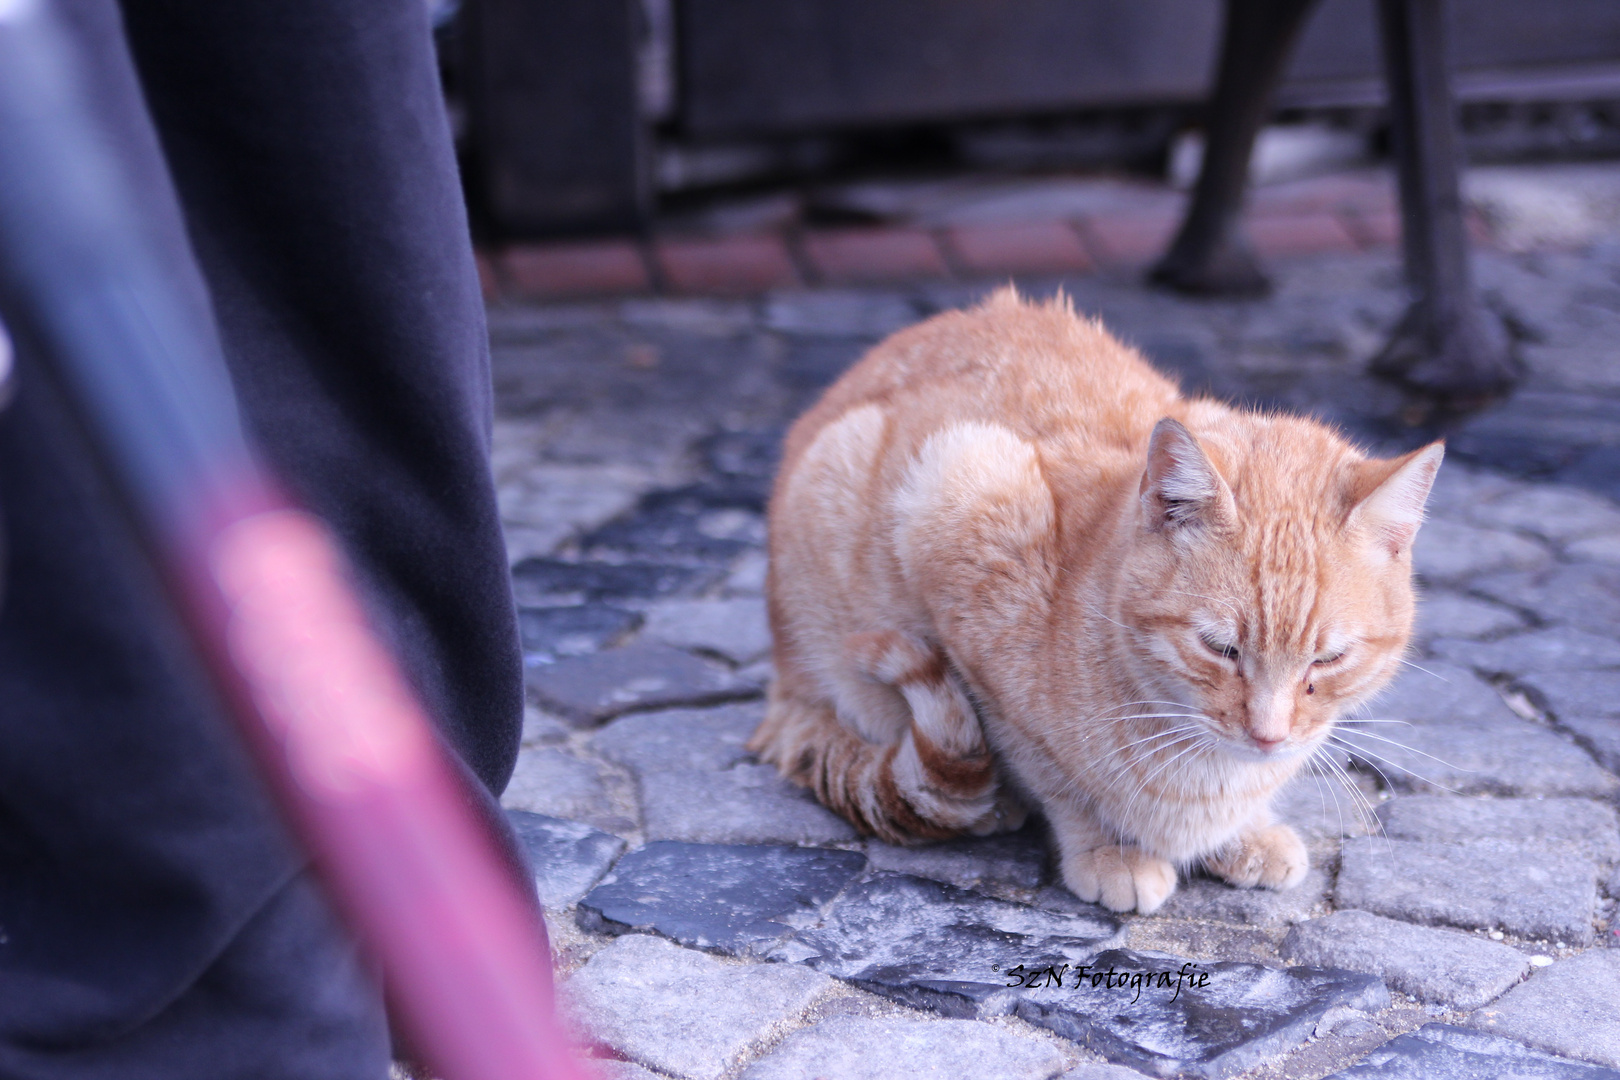 a cat in istanBooL